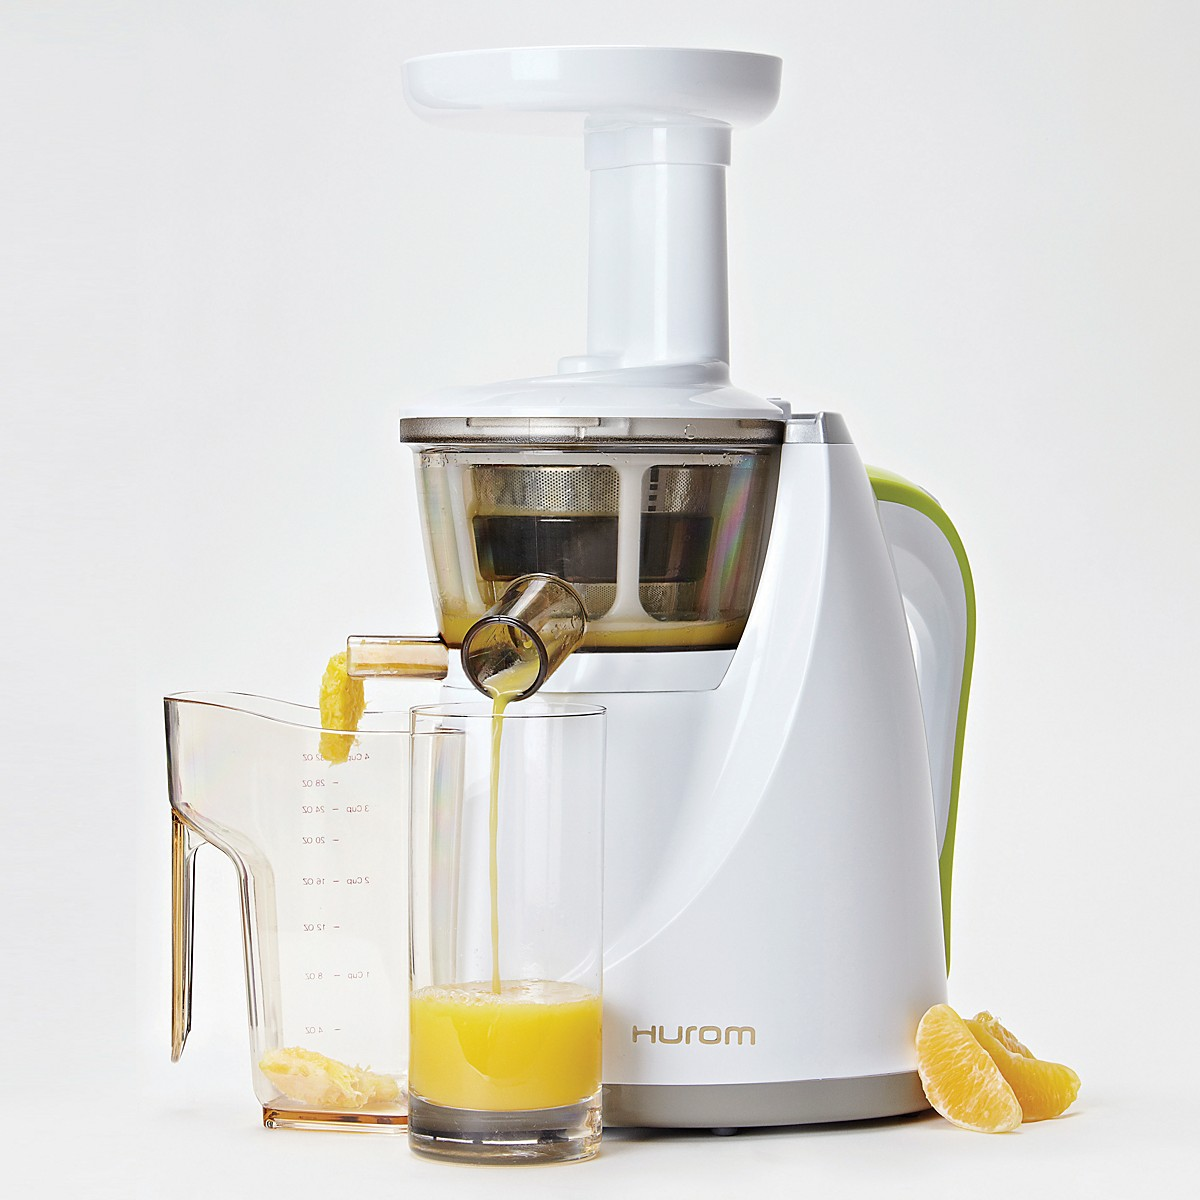 Hurom Slow Juicer How To Use : The Wish List 2014 Our favourite kitchen appliances for chefs and avid home cooks